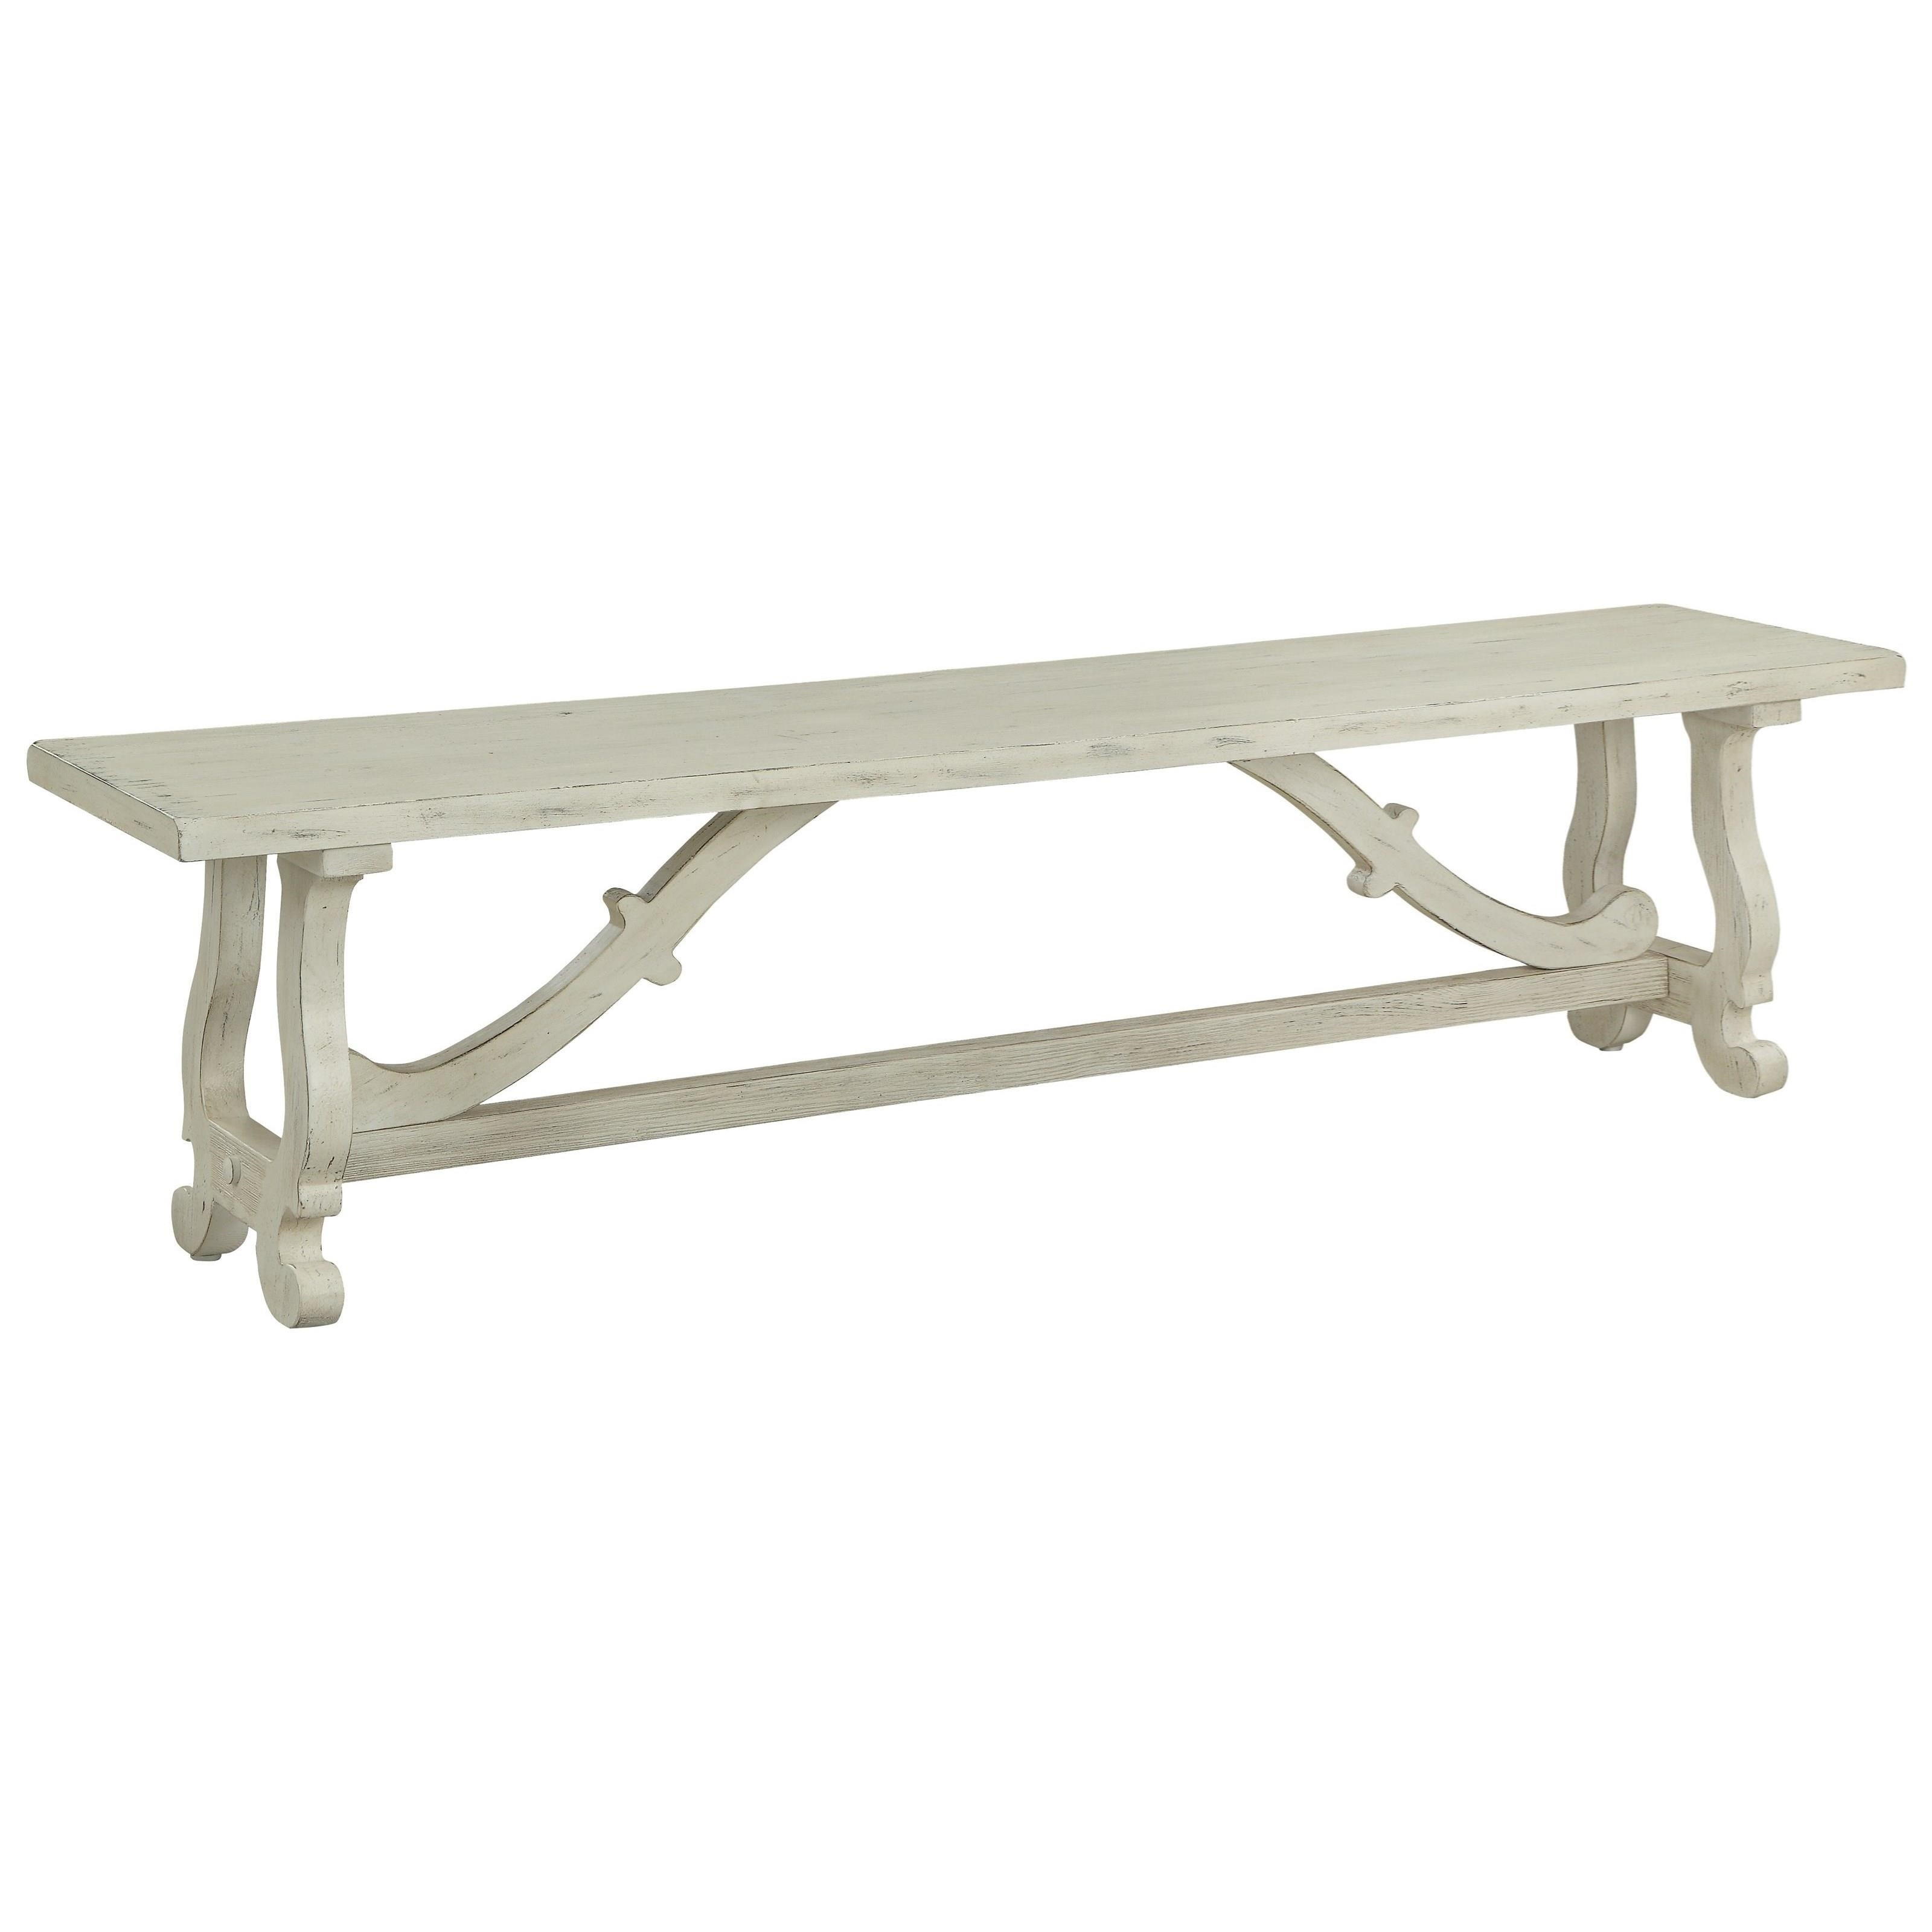 Orchard Park Orchard Park Dining Bench by C2C at Walker's Furniture